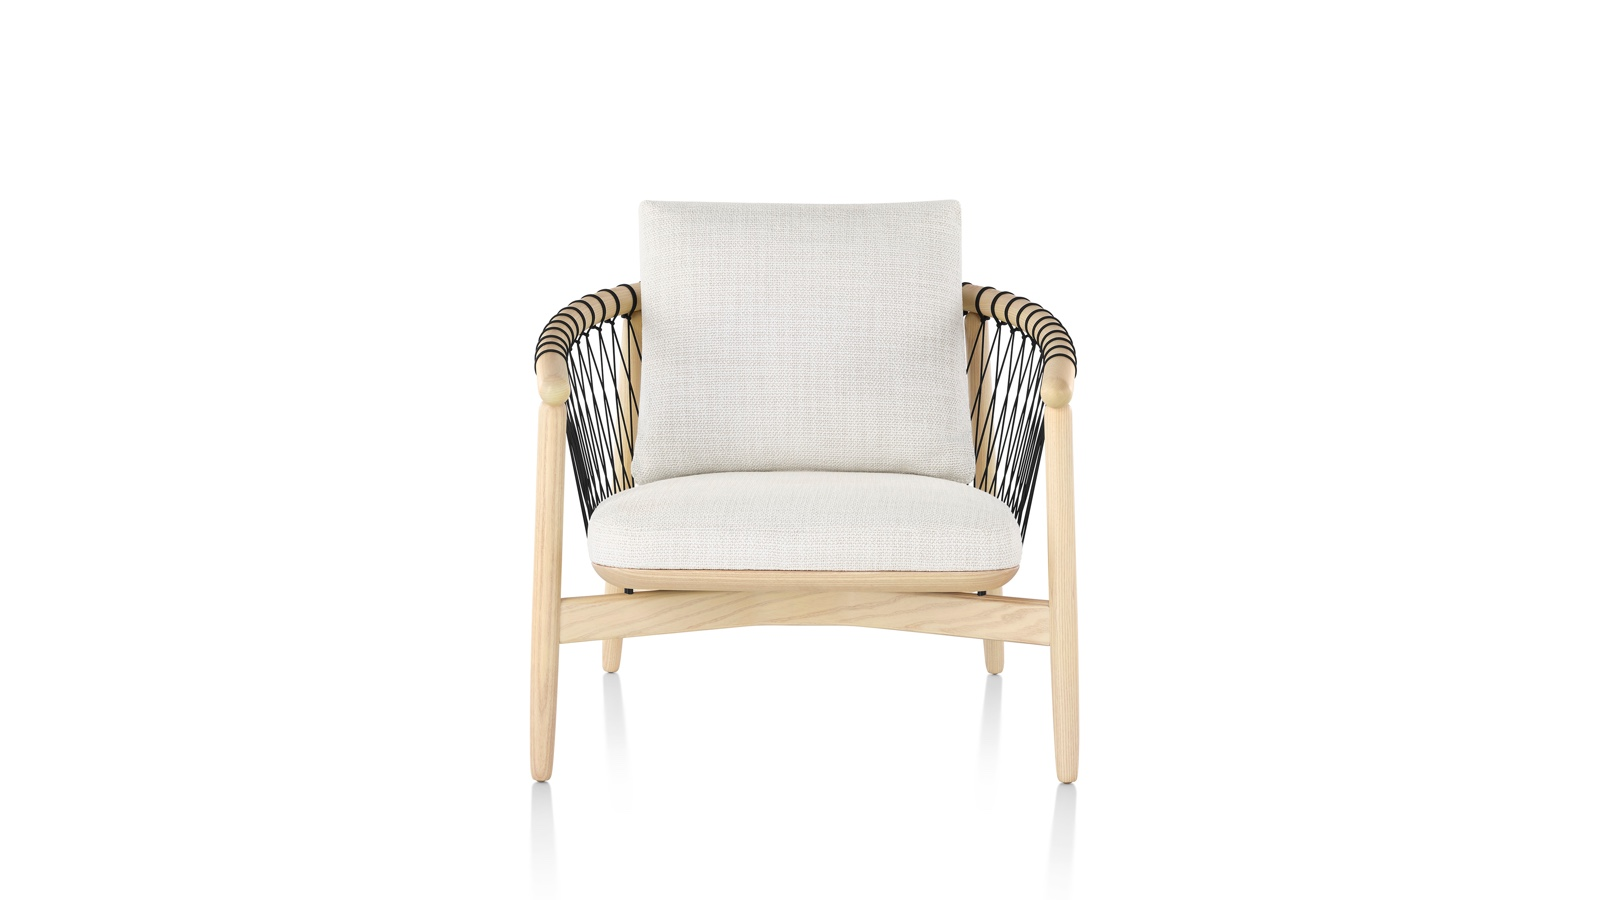 White sweep image of a Crosshatch Lounge Chair.